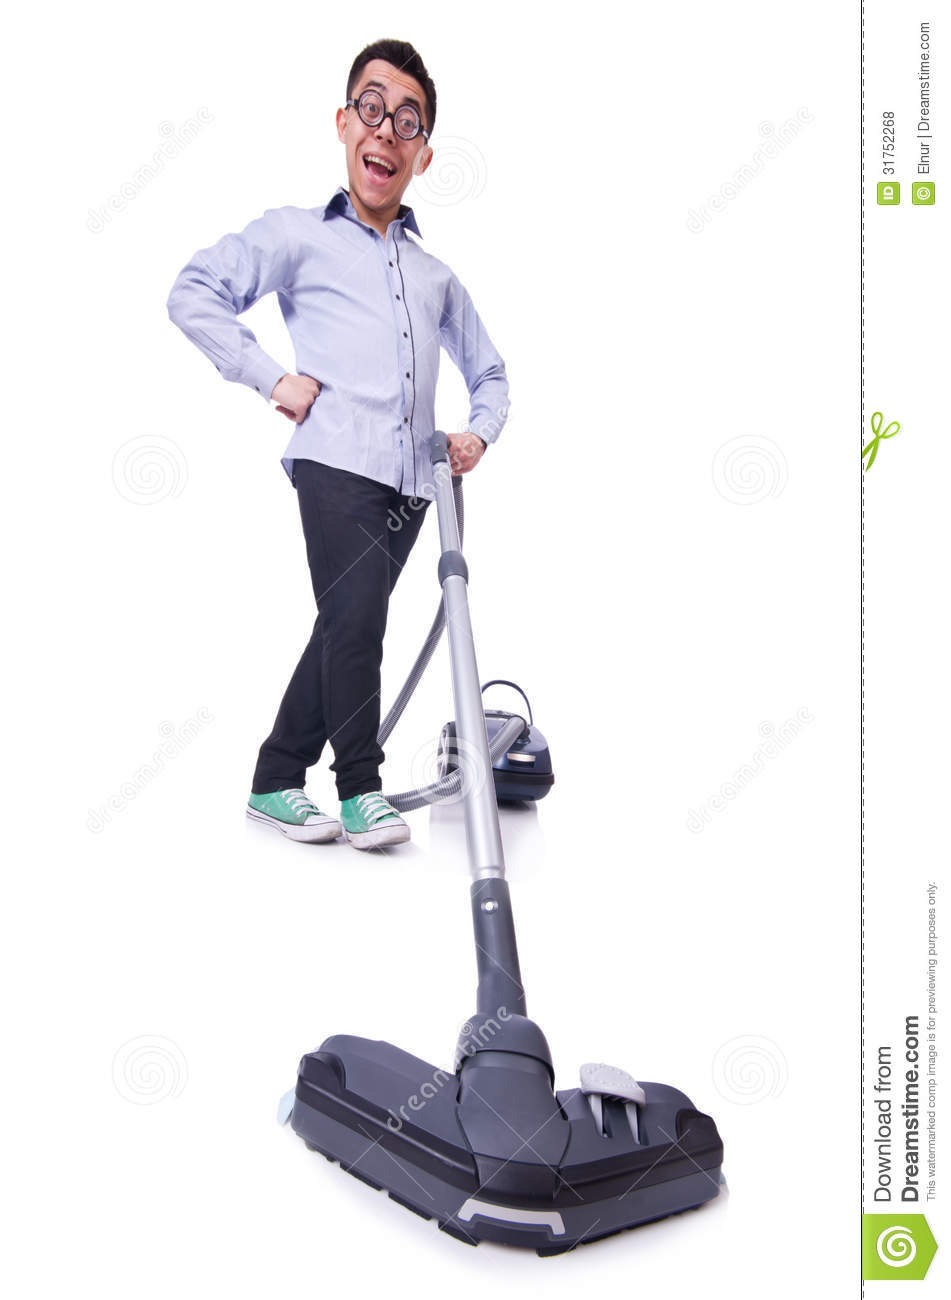 Funny Man With Vacuum Cleaner Stock Photo Image Of